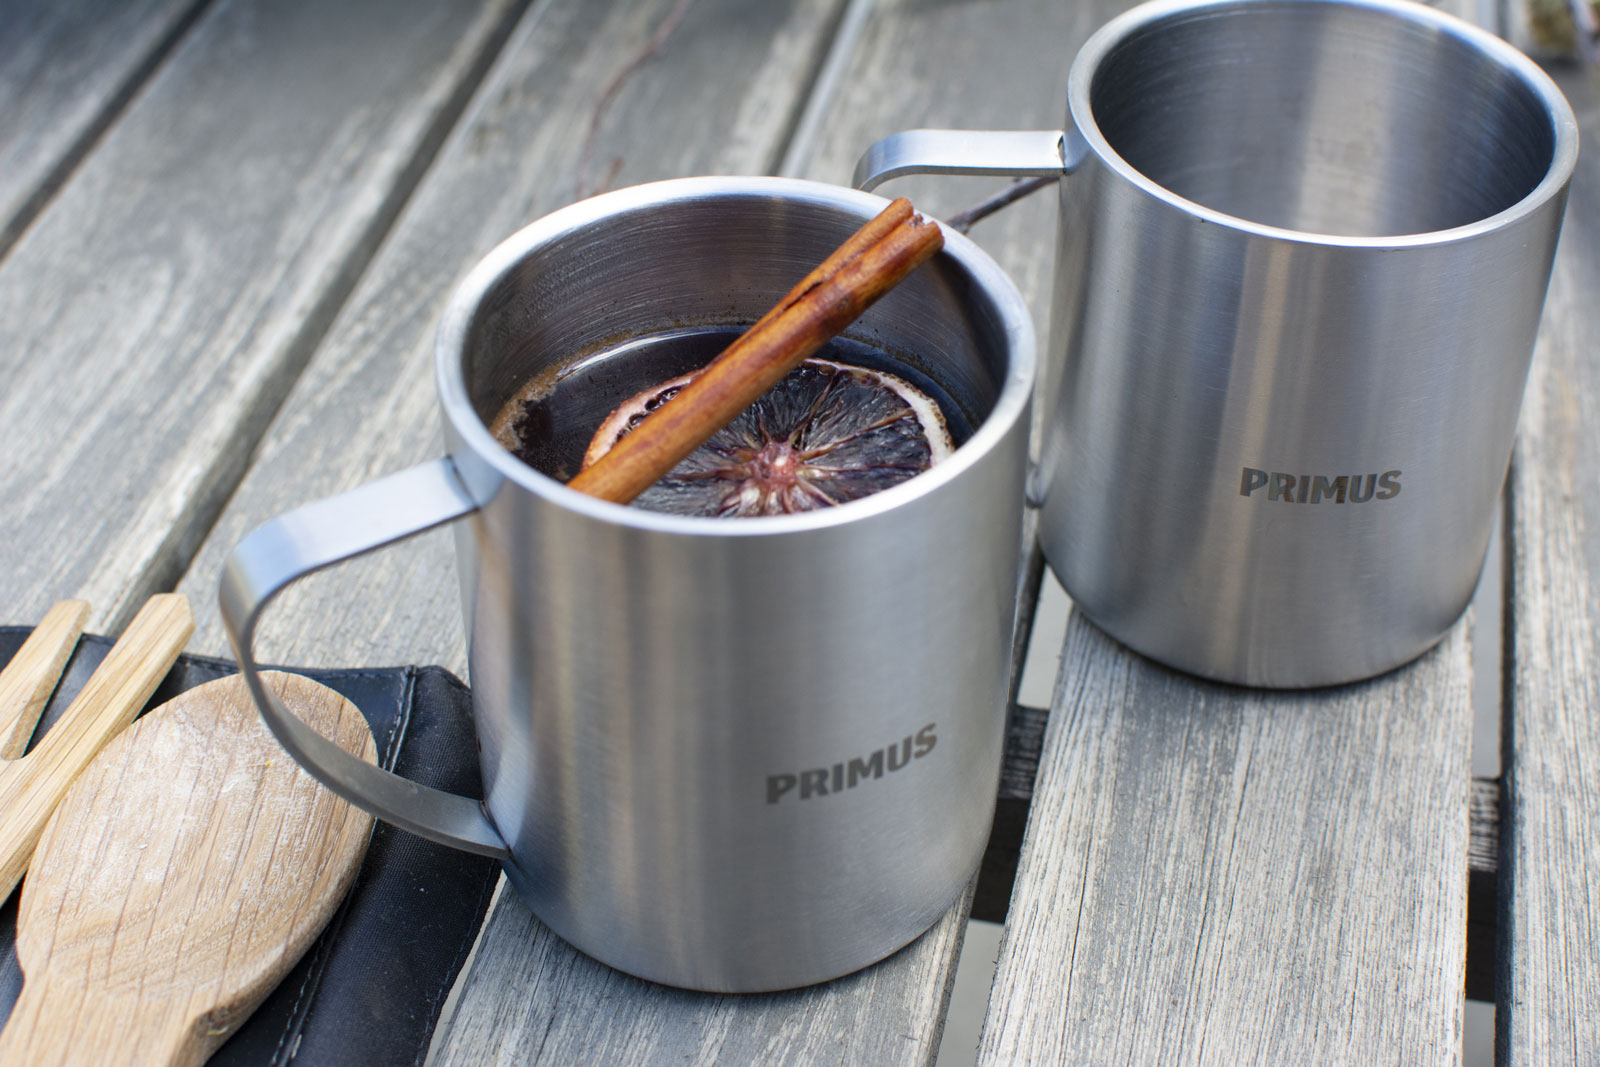 Primus: Mulled Wine-makes 8 servings